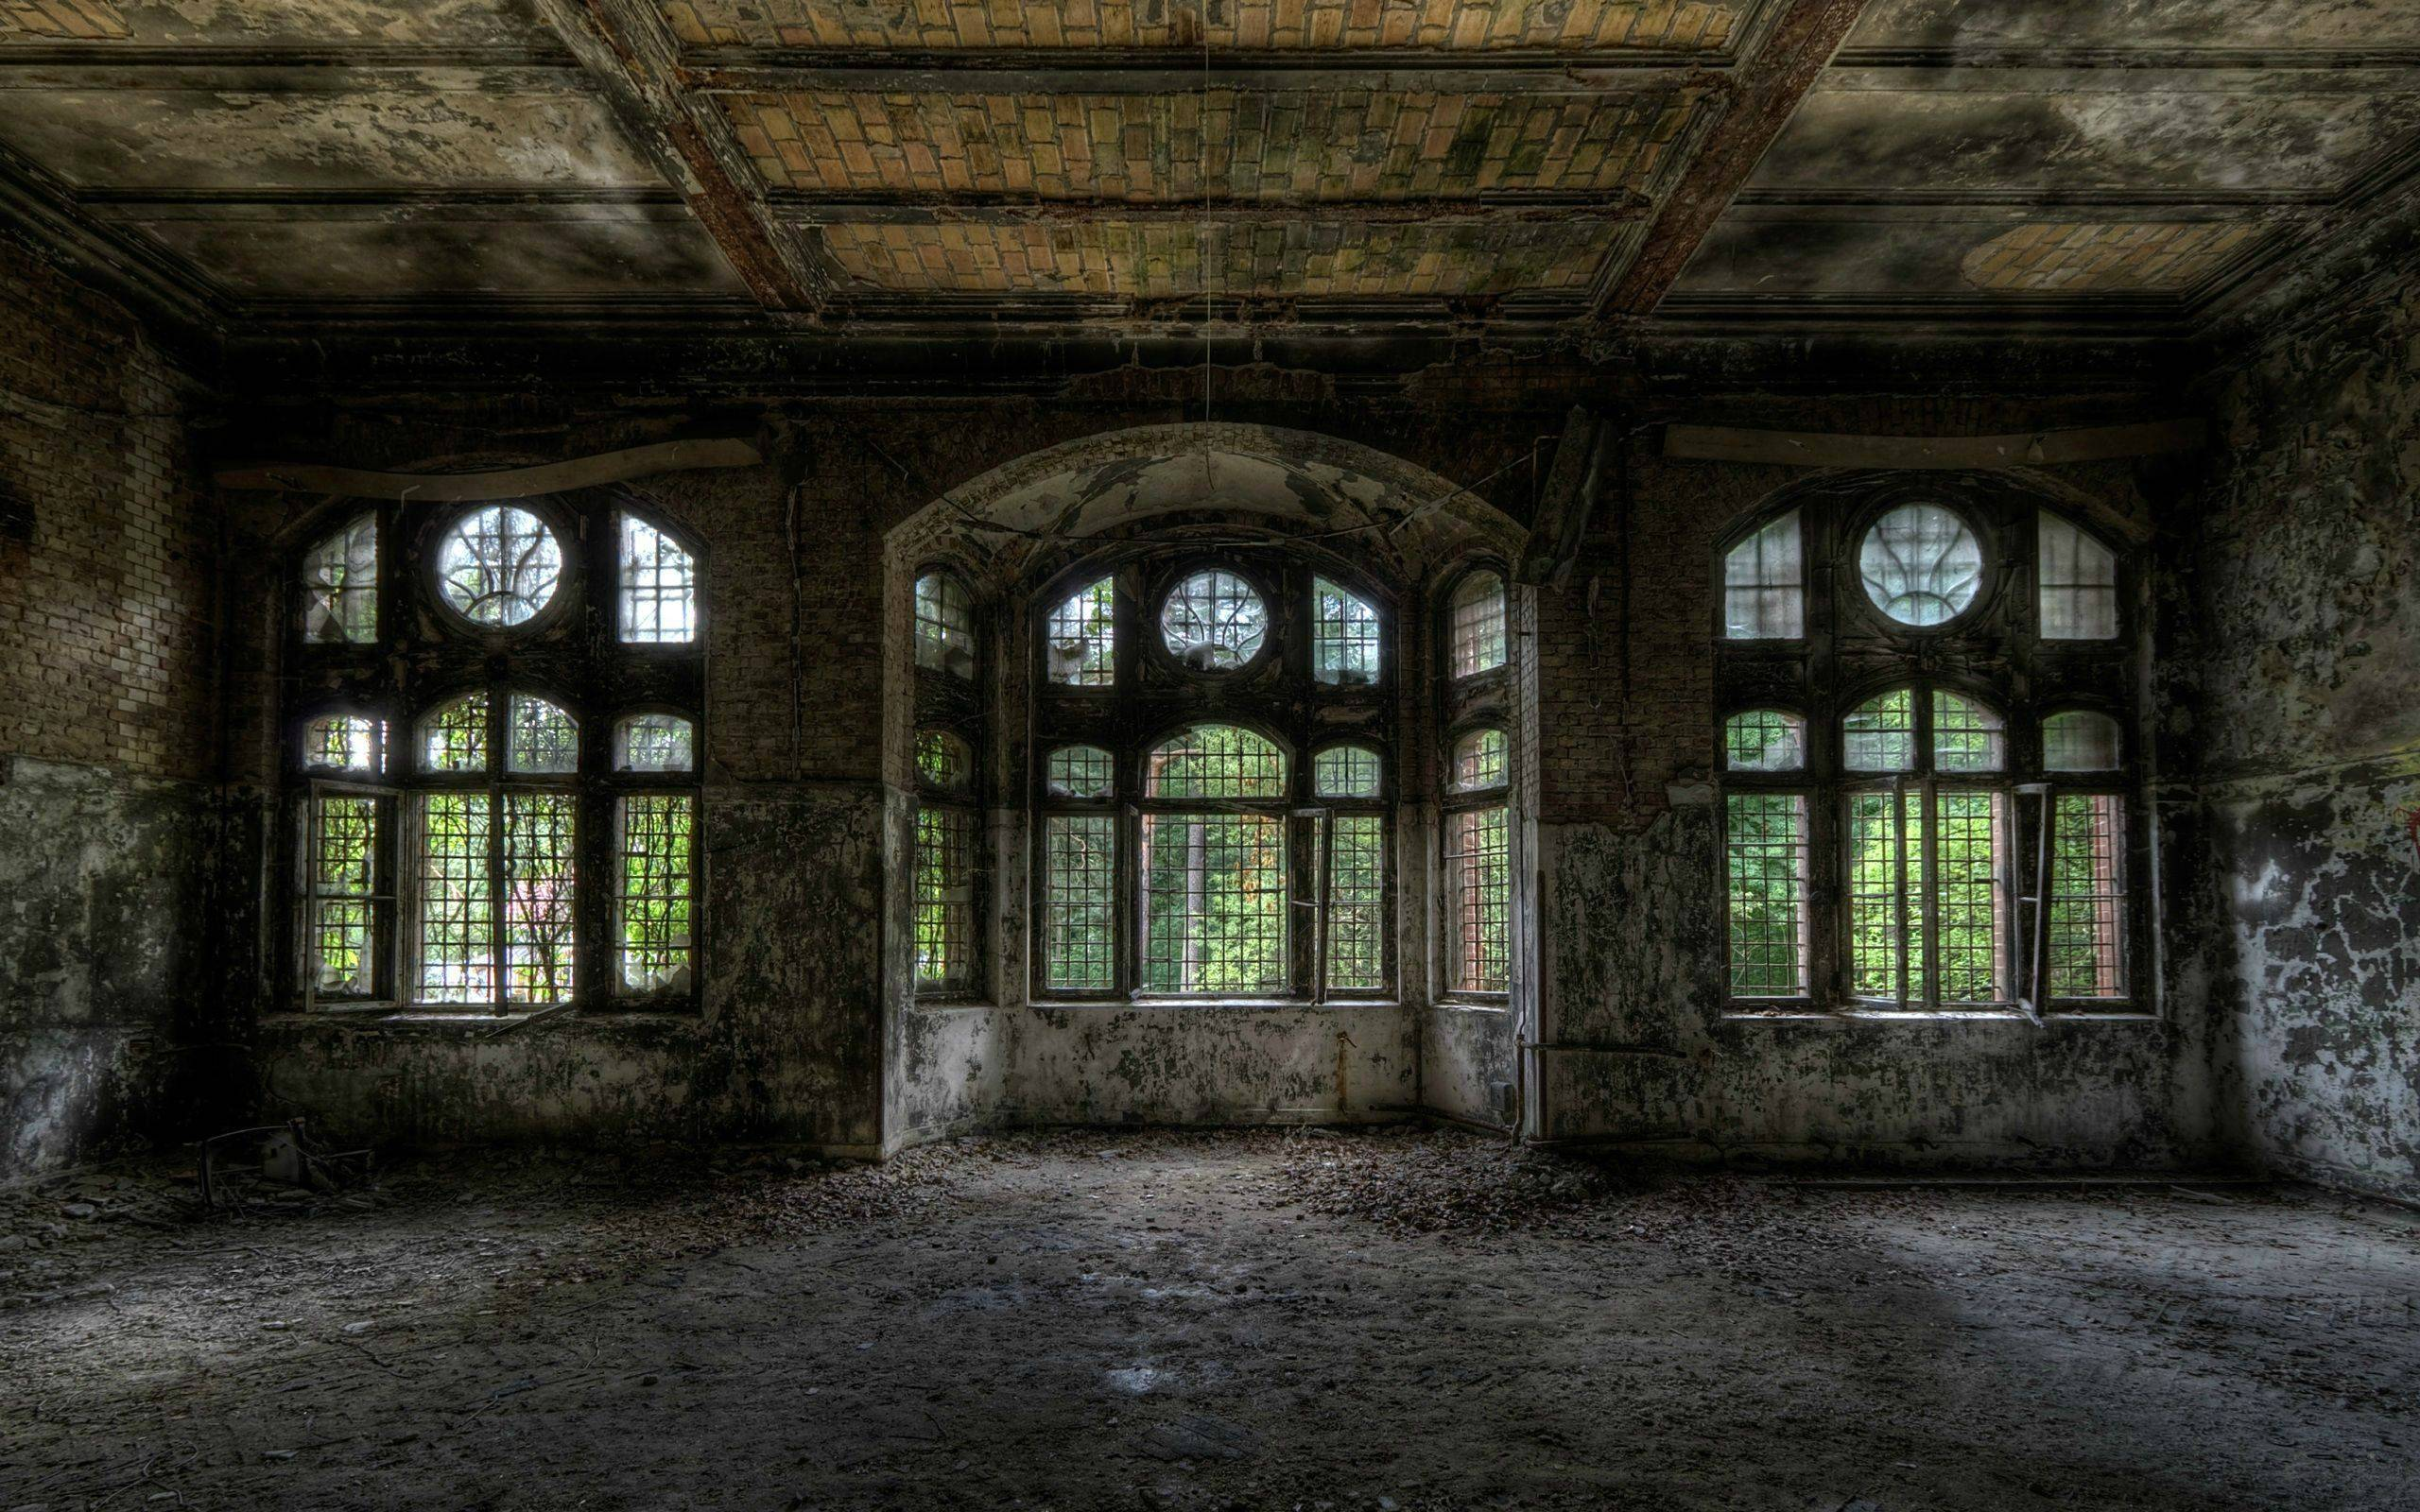 Abandoned Building Wallpaper | 2560x1600 | ID:34397 ...